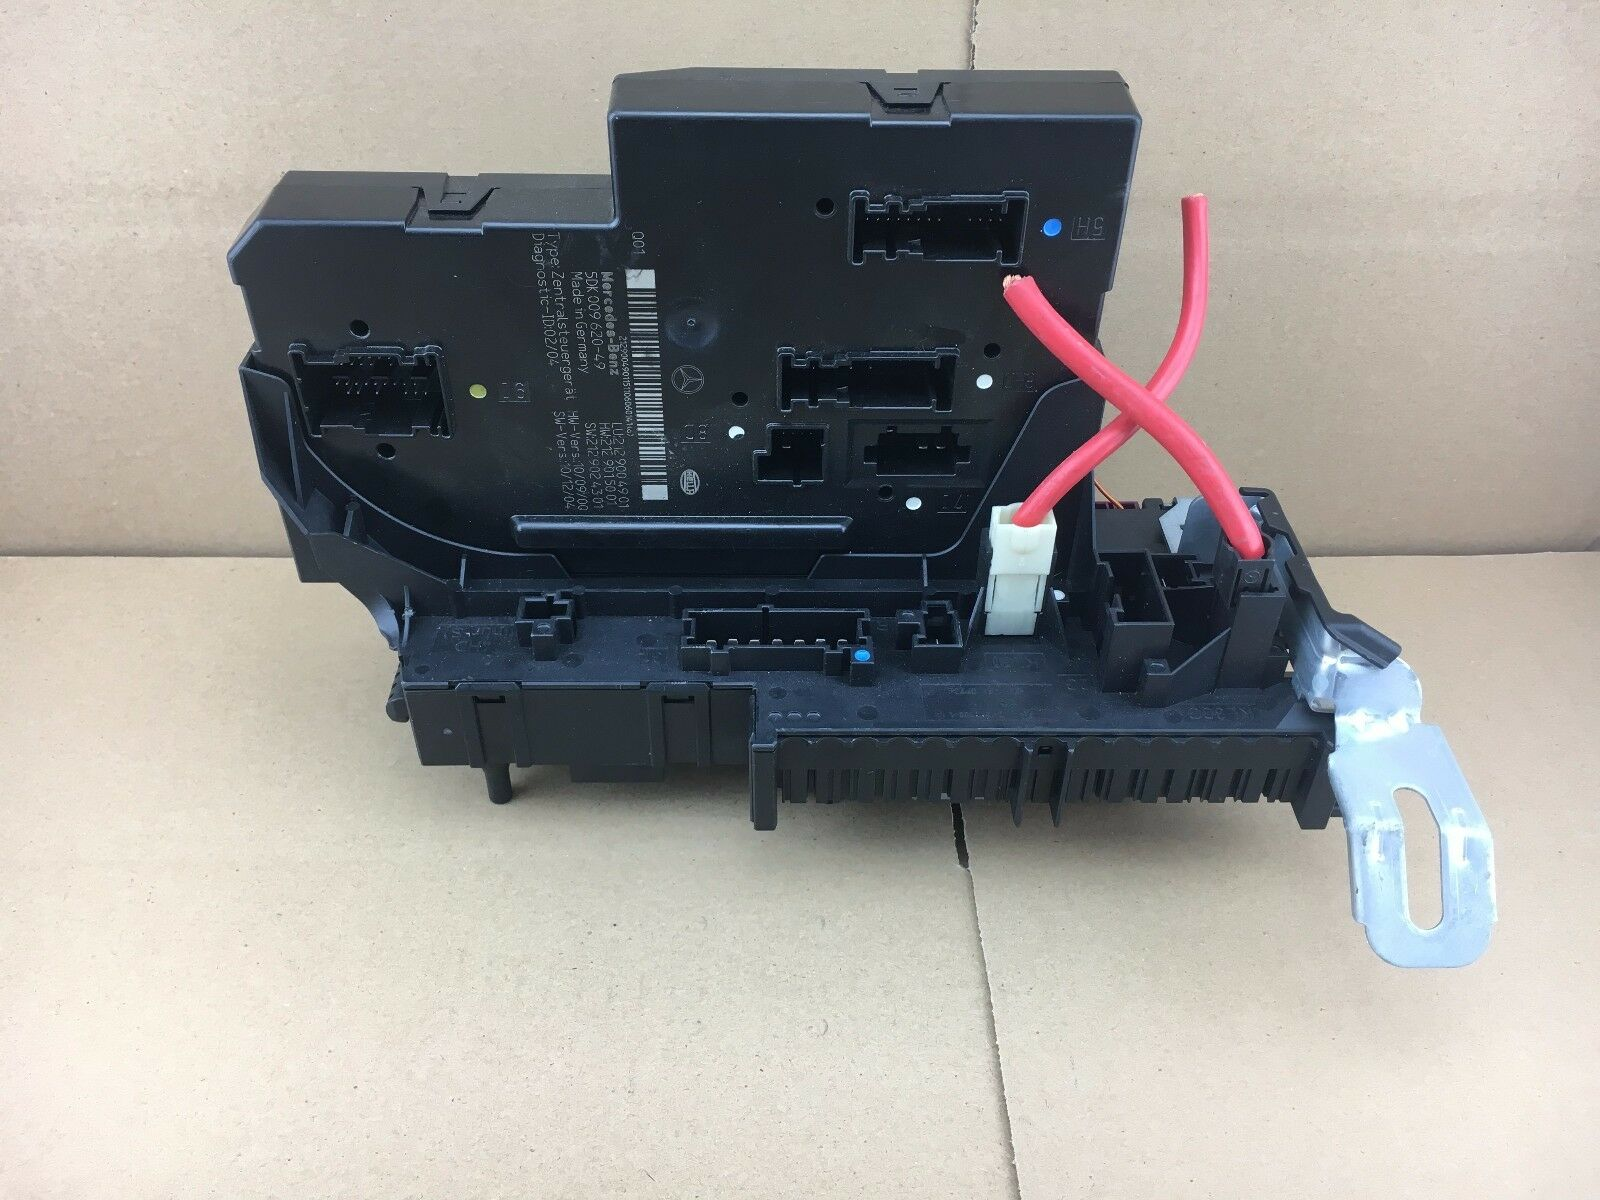 Mercedes E Class W212 Rear Sam Unit Fuse Relay Box A2129004901 Bmw E46 Ecu 1 Of 2only Available See More